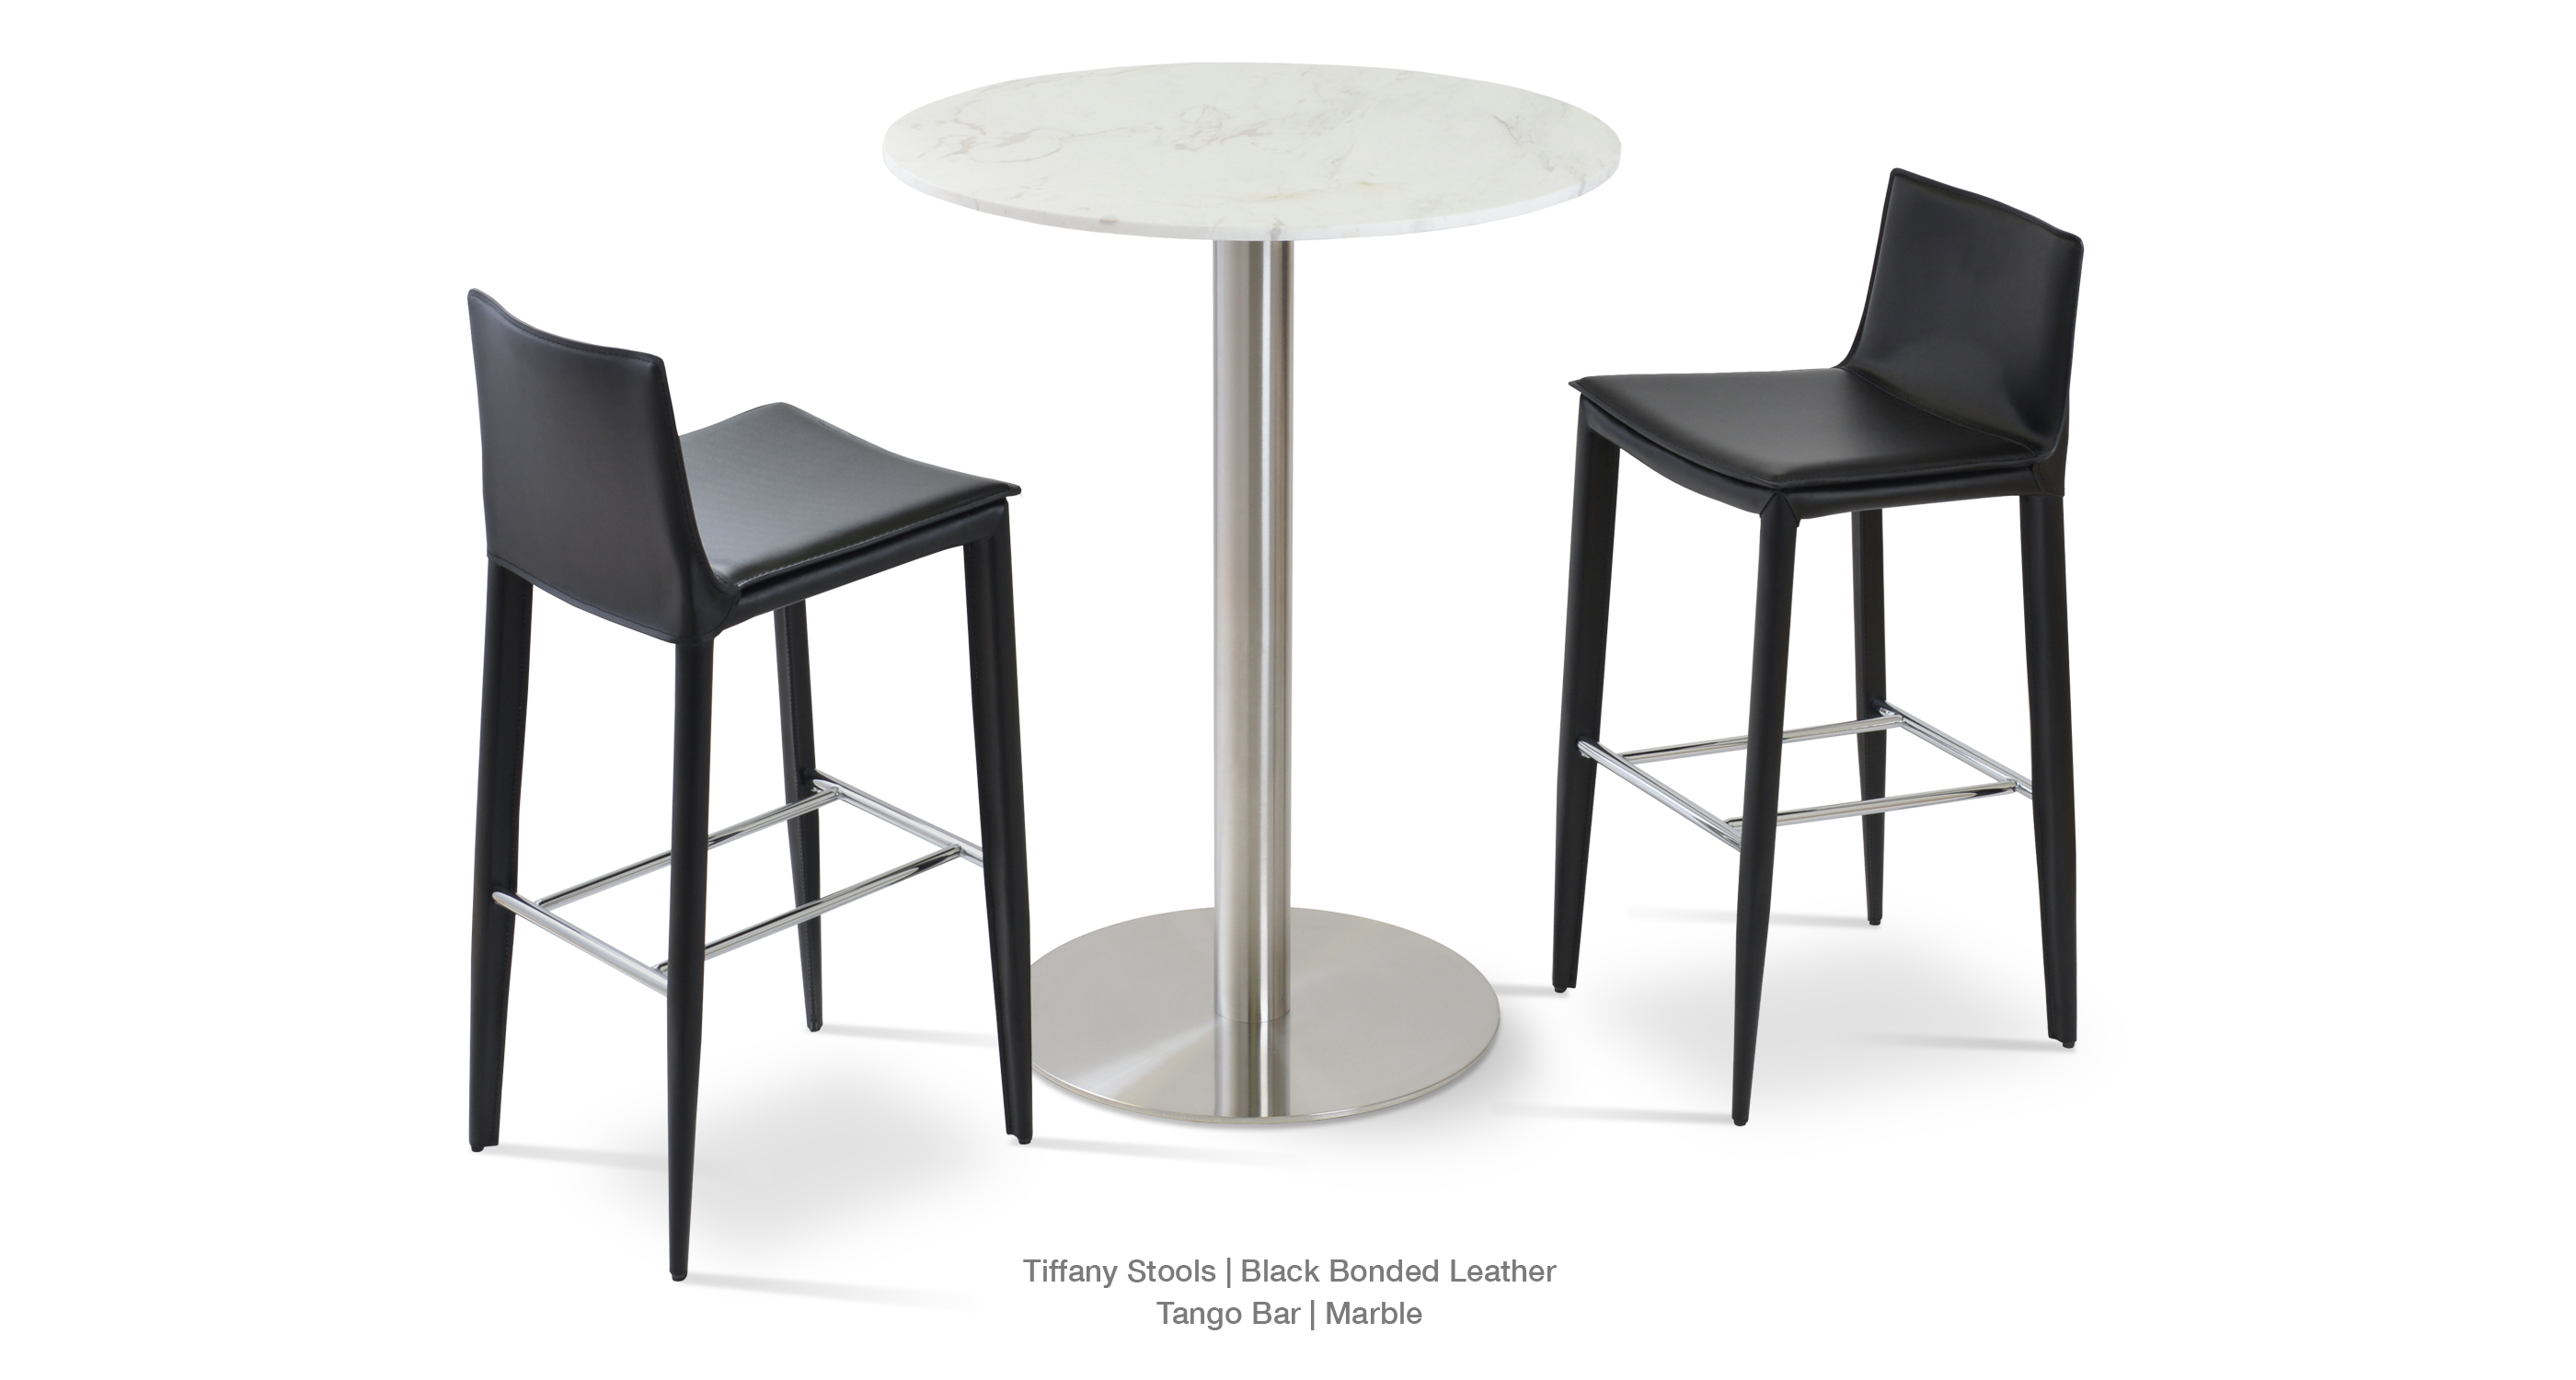 Tiffany Stool Black Tango Bar